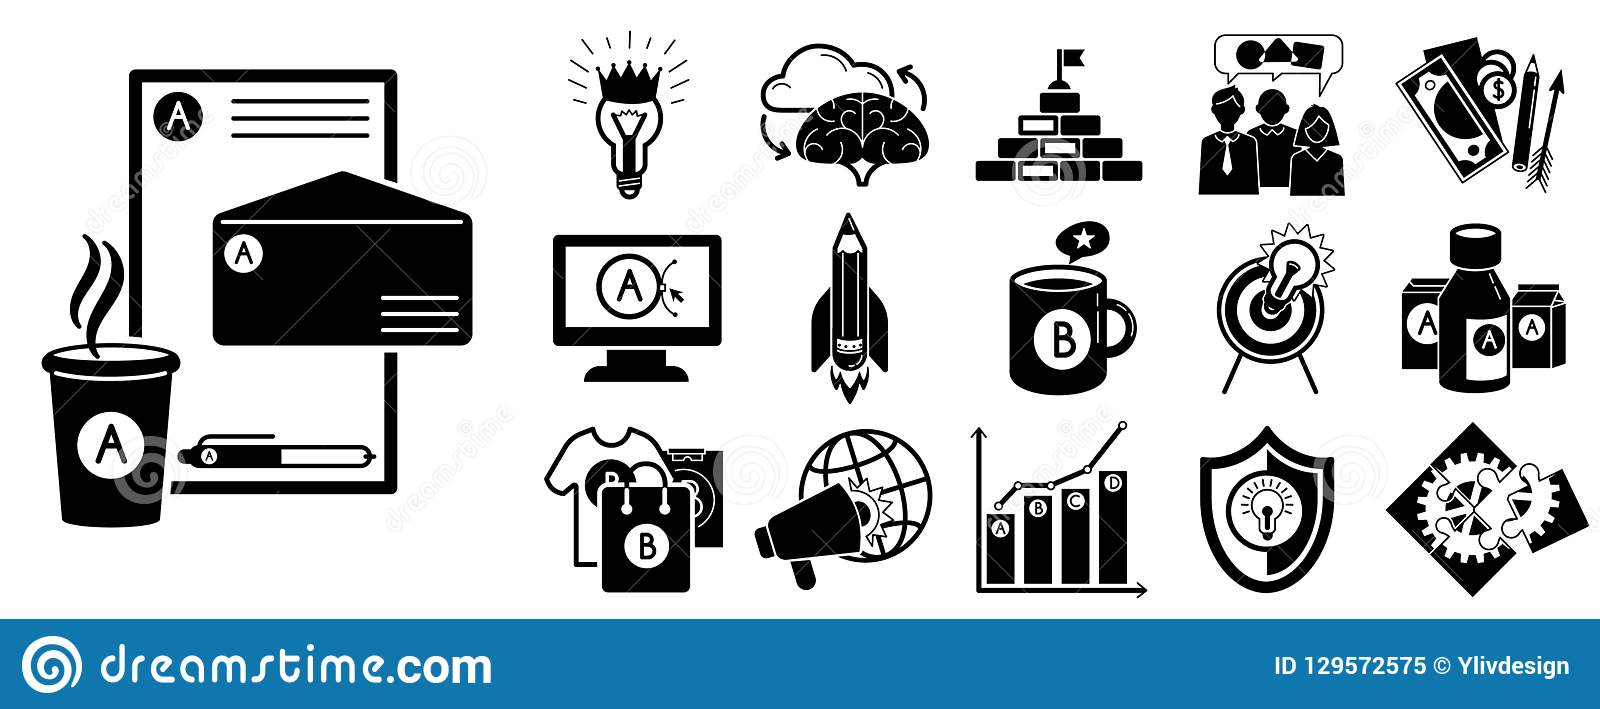 brand identity icon set simple style stock vector illustration of business digital 129572575 https www dreamstime com brand identity icon set simple set brand identity vector icons web design white background brand identity icon set image129572575